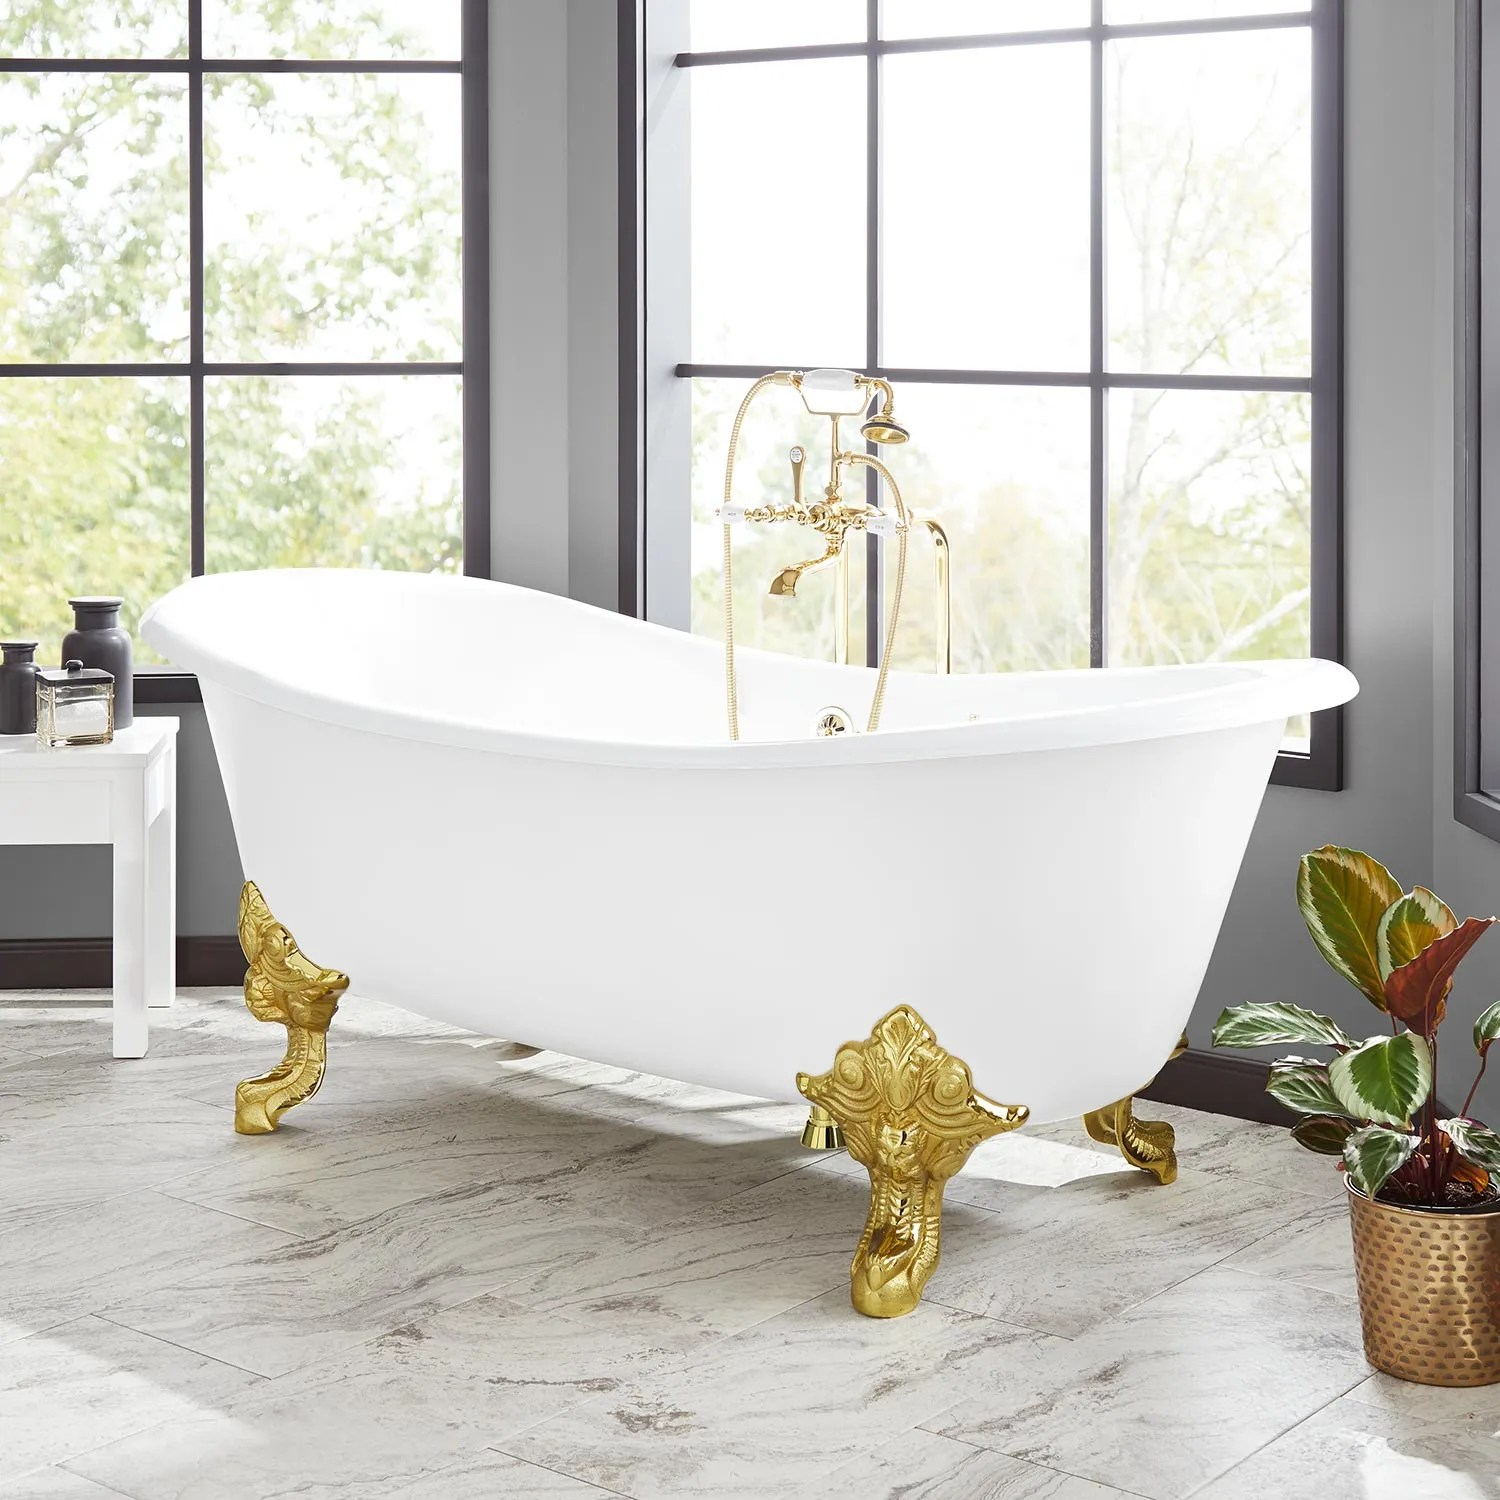 Freestanding Tub Buying Guide Best Style Size And Material For You